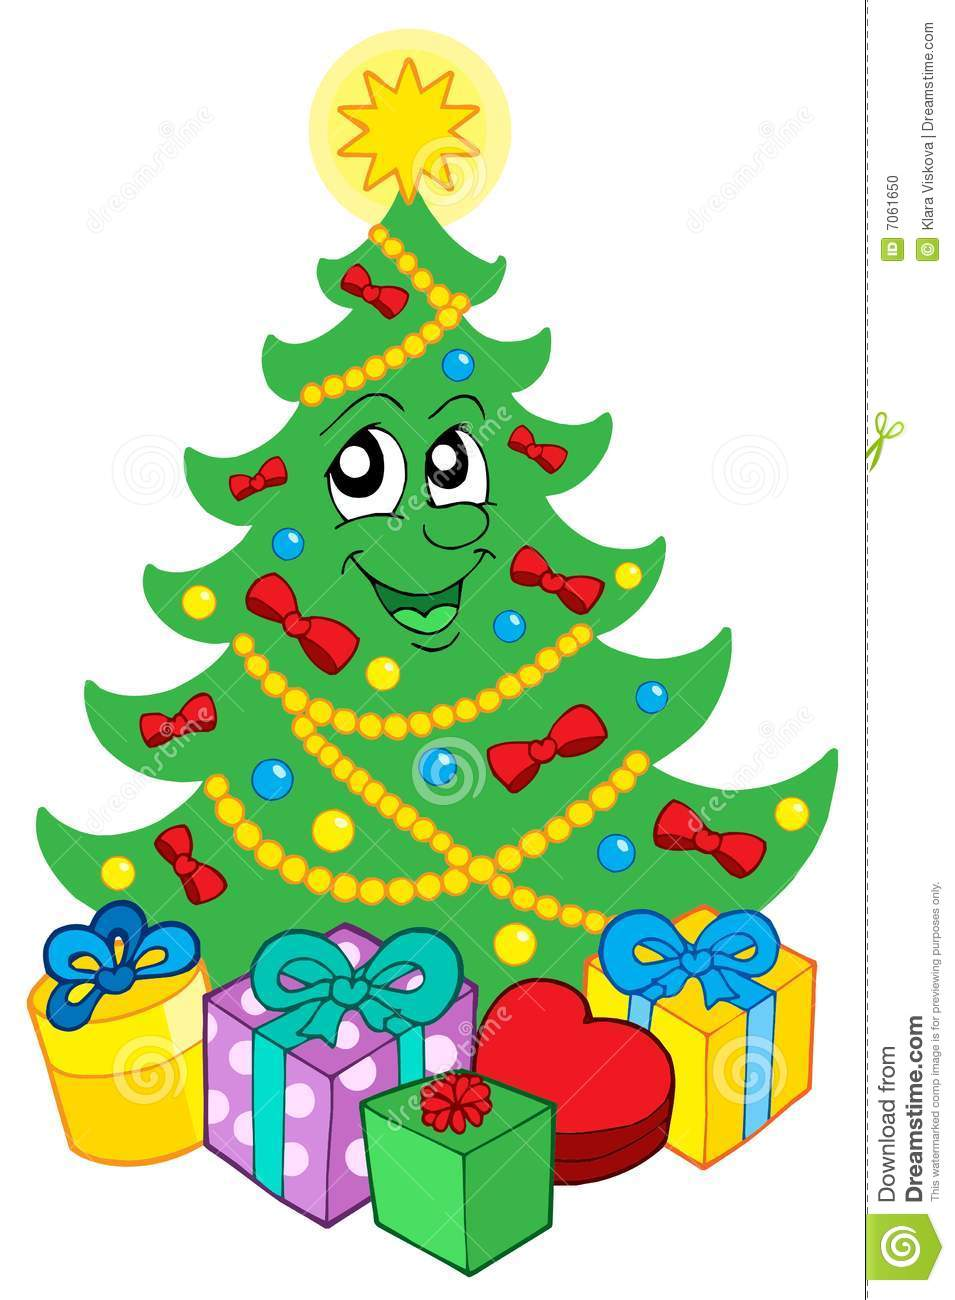 Smiling Christmas Tree With Gifts Stock Vector - Illustration of ...